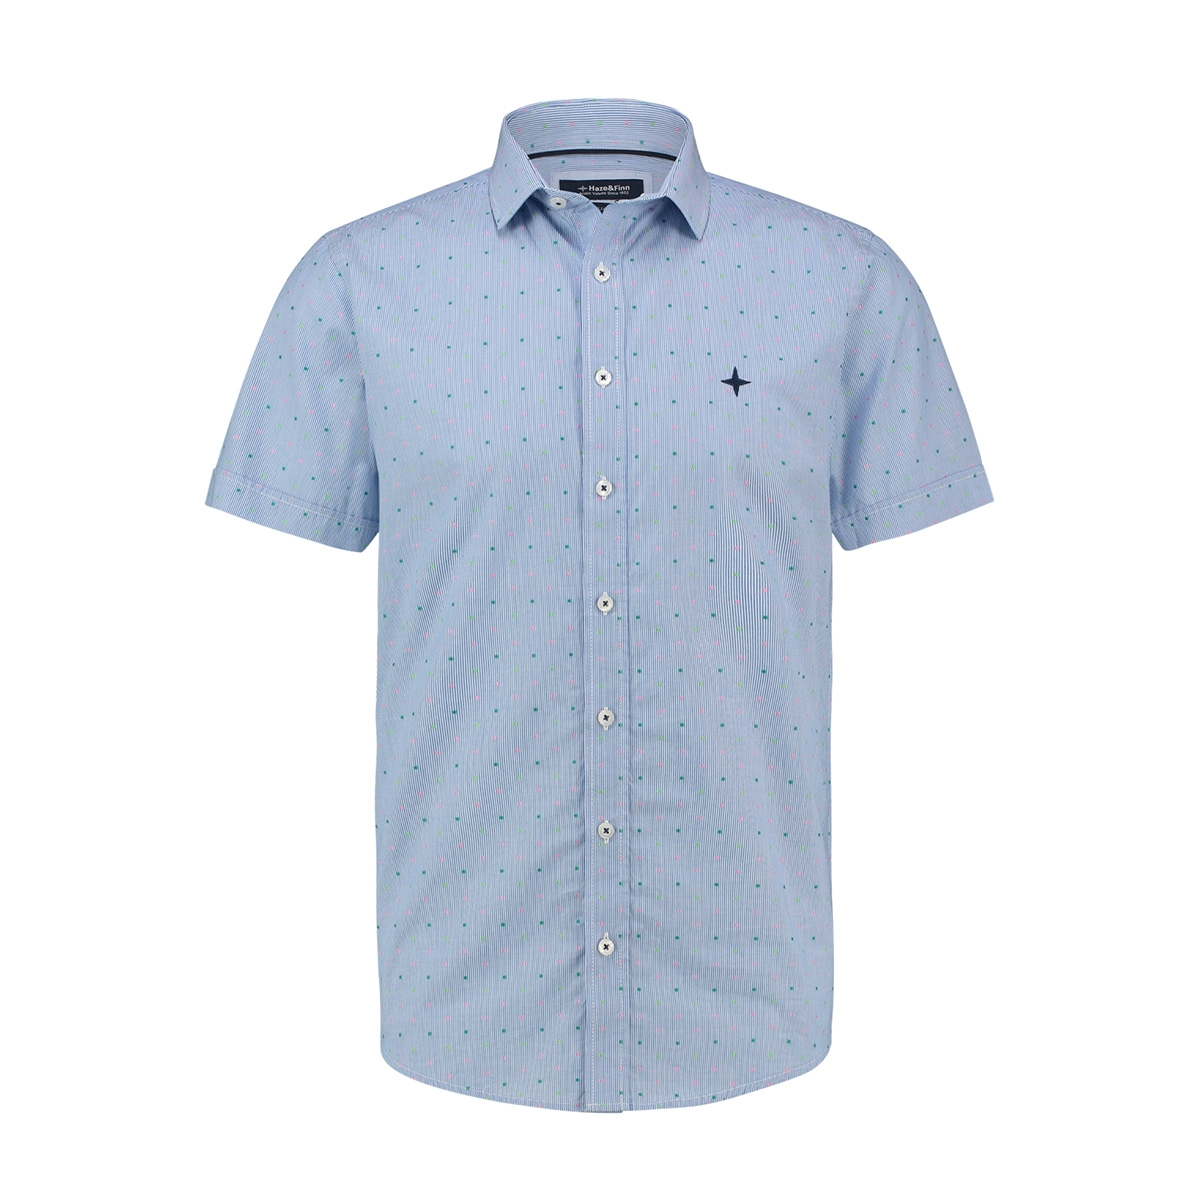 shirt aop stretch mc13 0105 04 haze & finn overhemd stripe fiesta